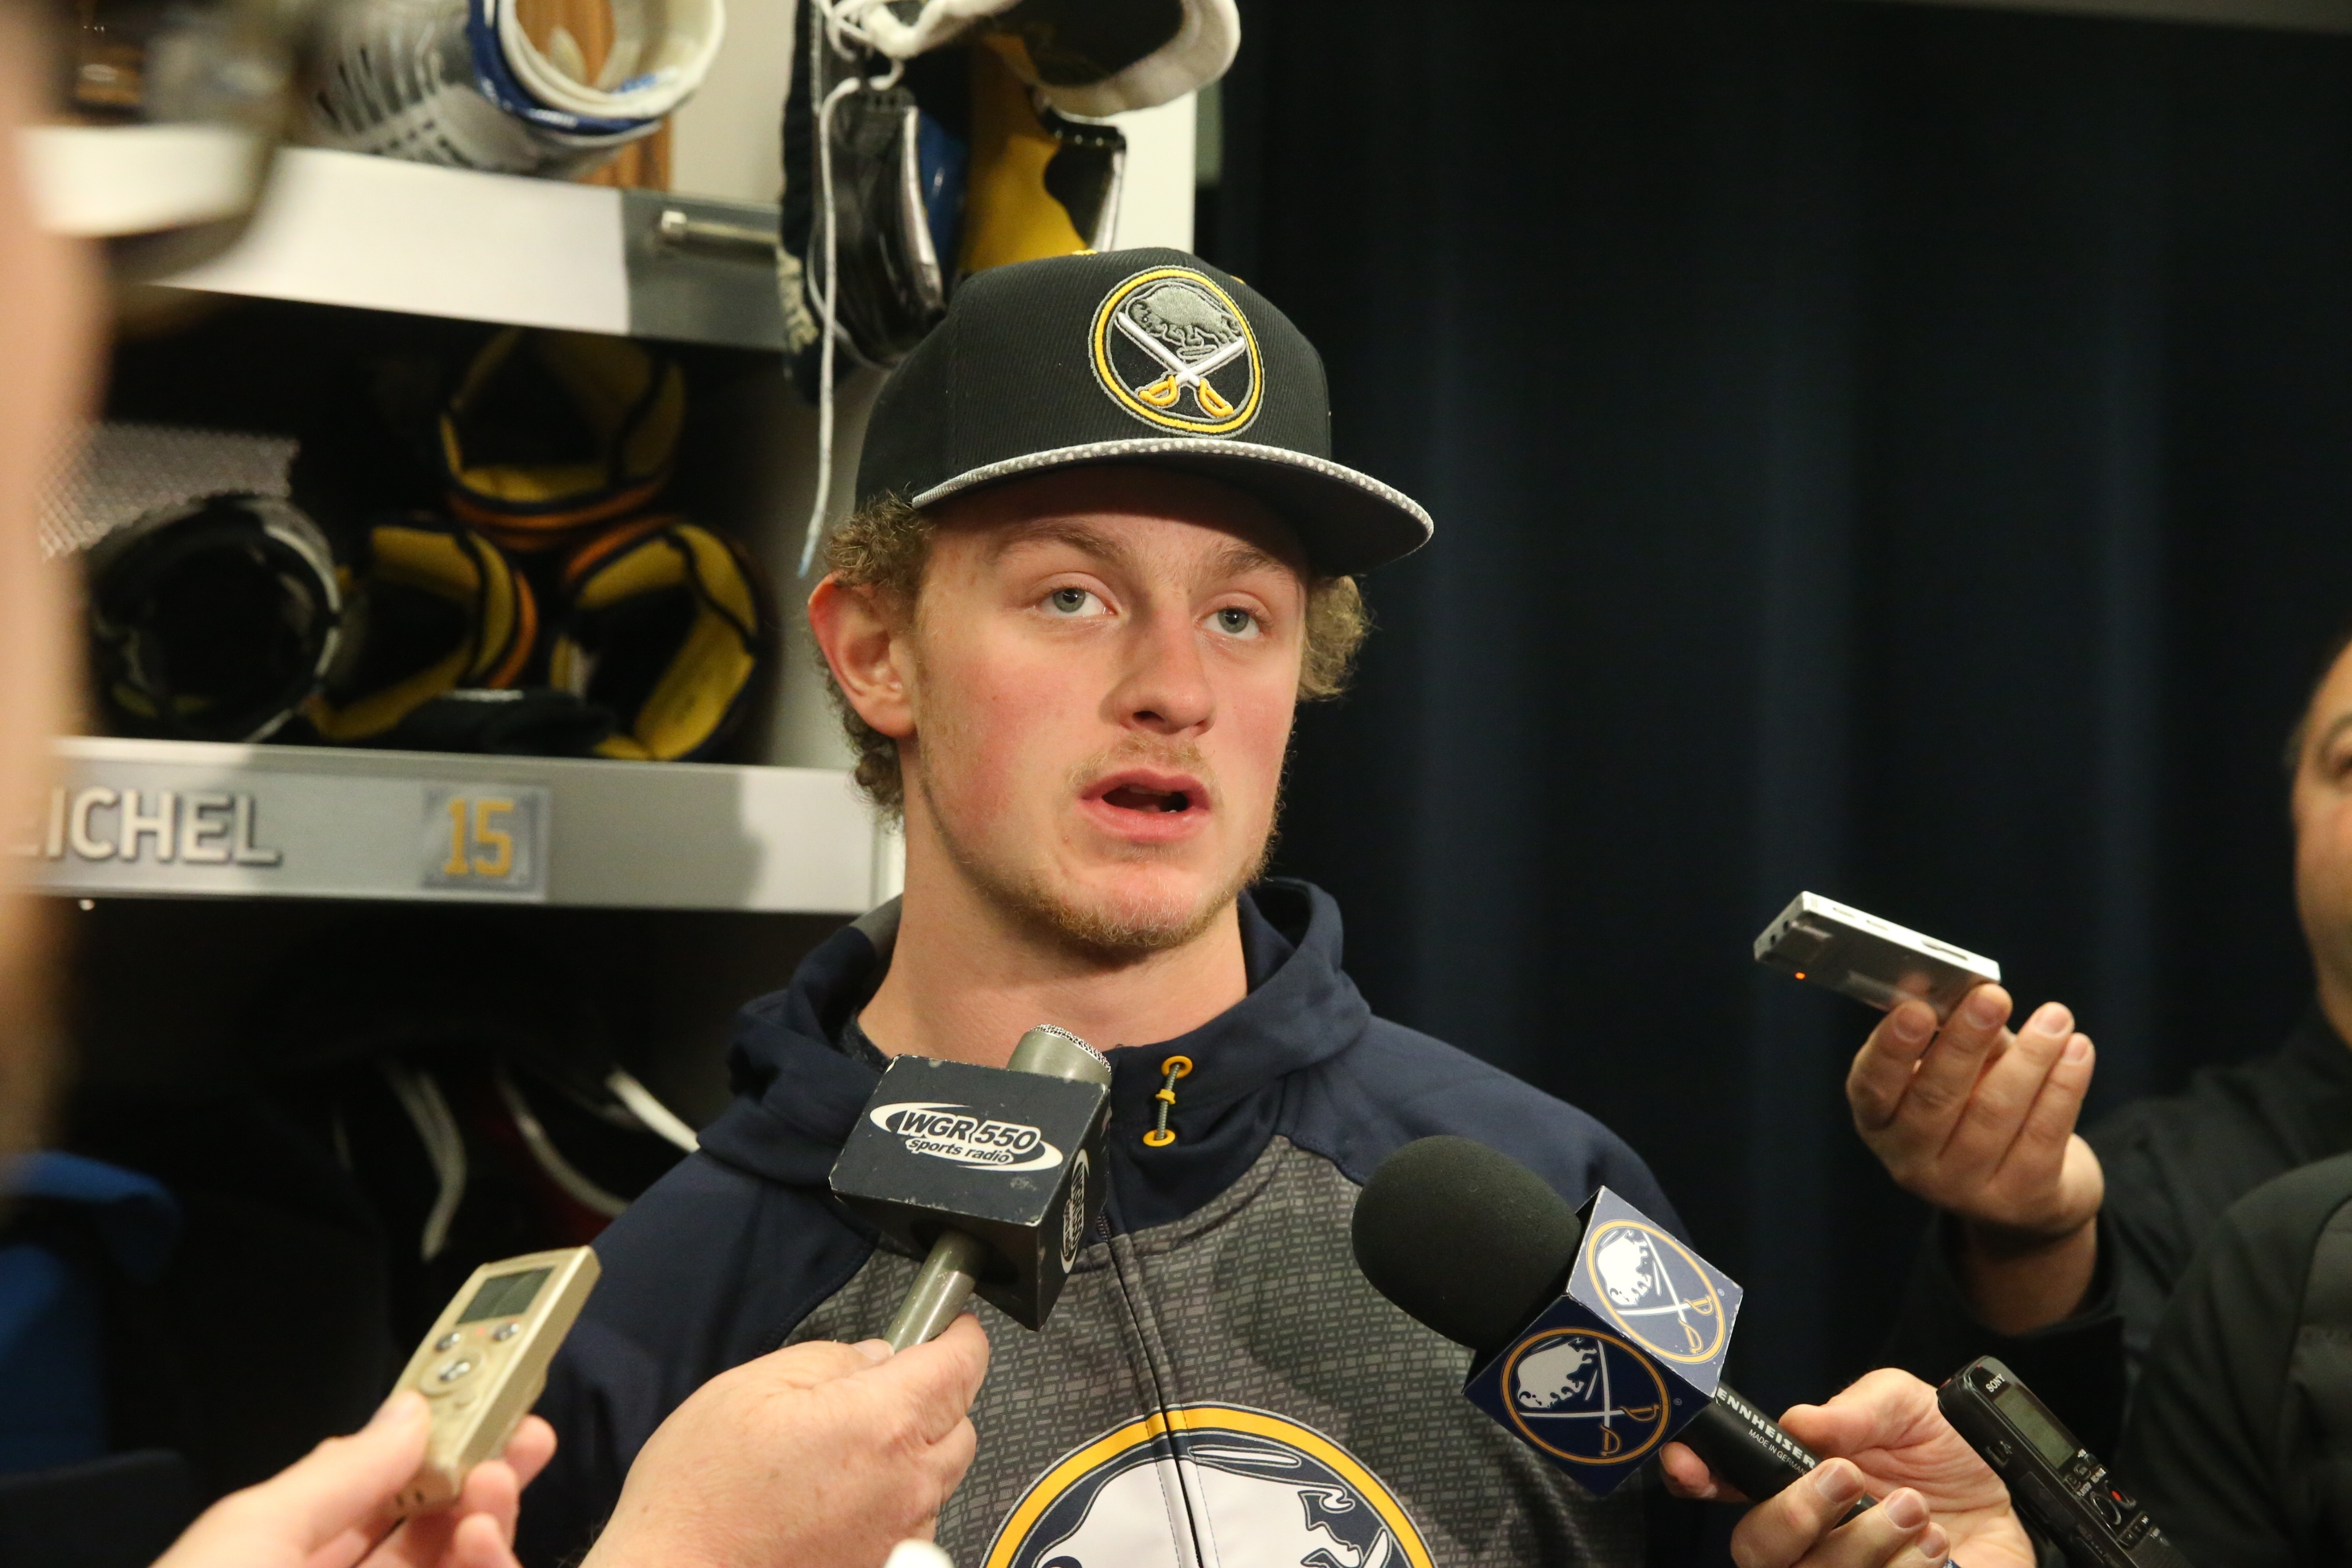 Jack Eichel will have contract talks with the Sabres when the time is right, his agent says. (John Hickey/Buffalo News)